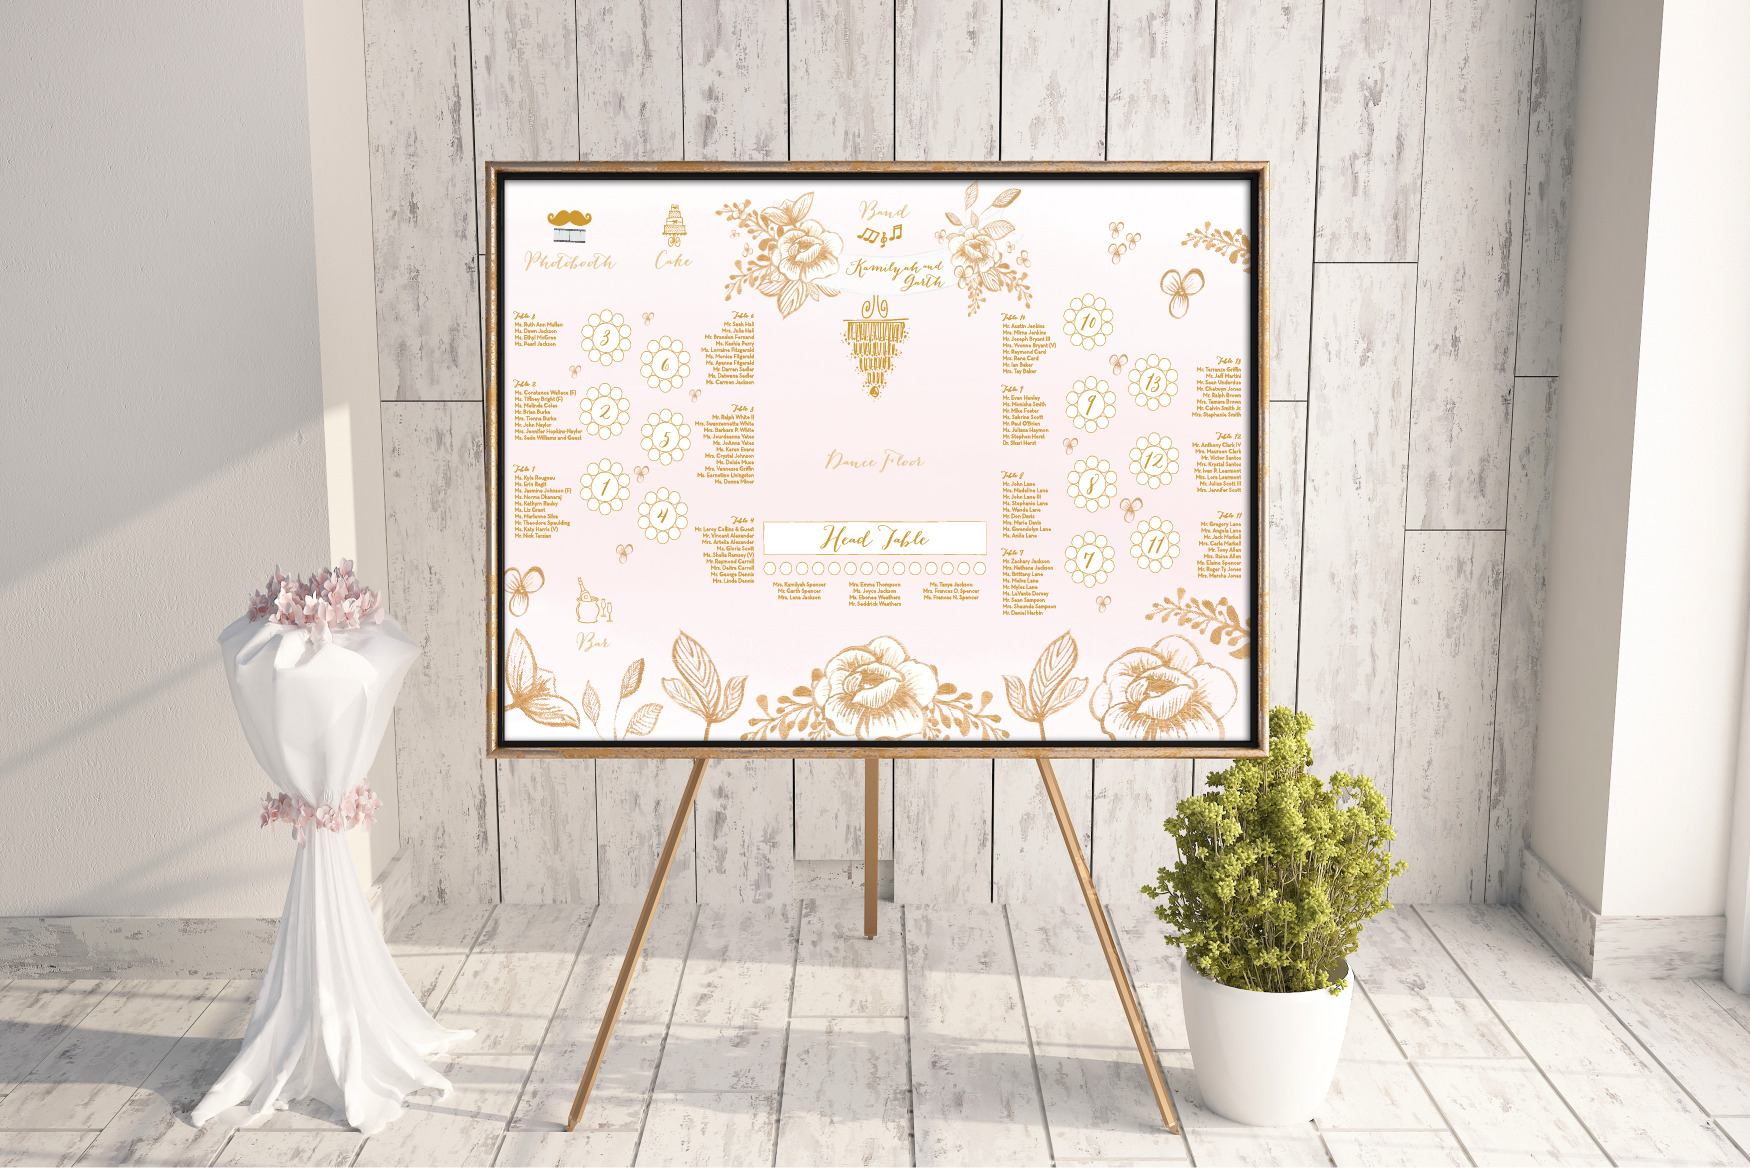 Landscape Wedding Canvas Mockup s329PNG-02.png